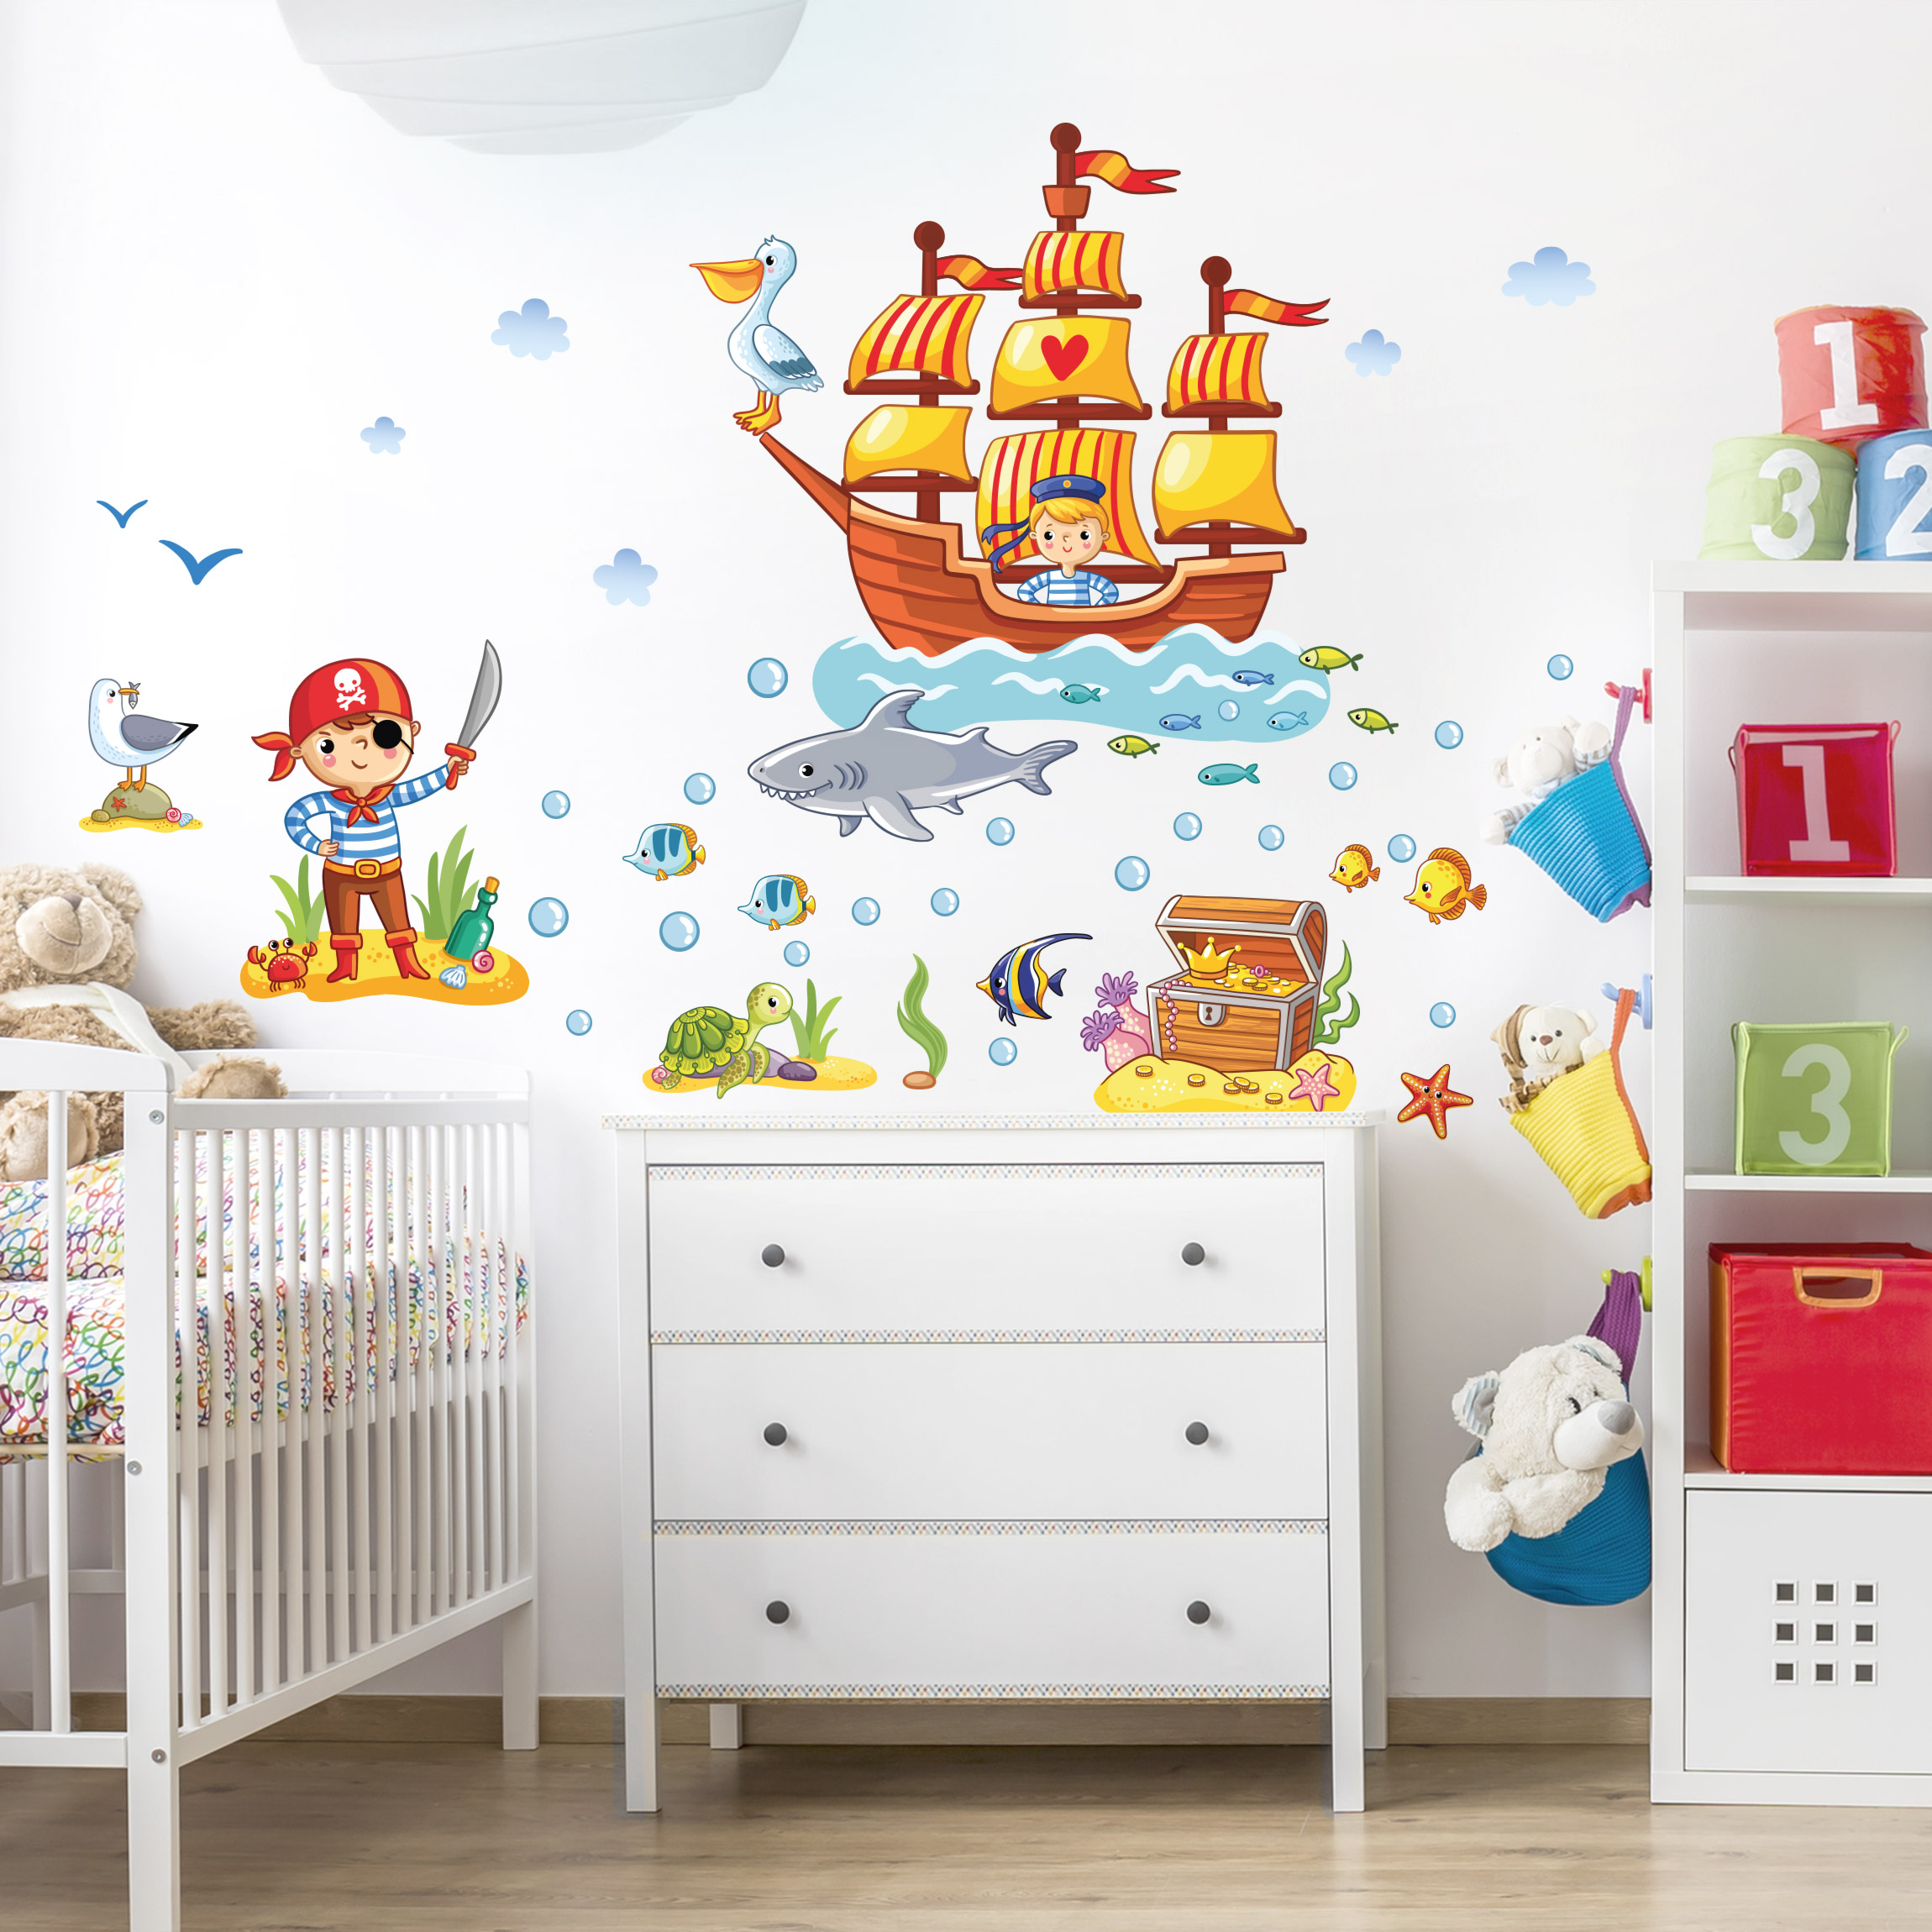 Wandtattoo Kinderzimmer Piraten Set